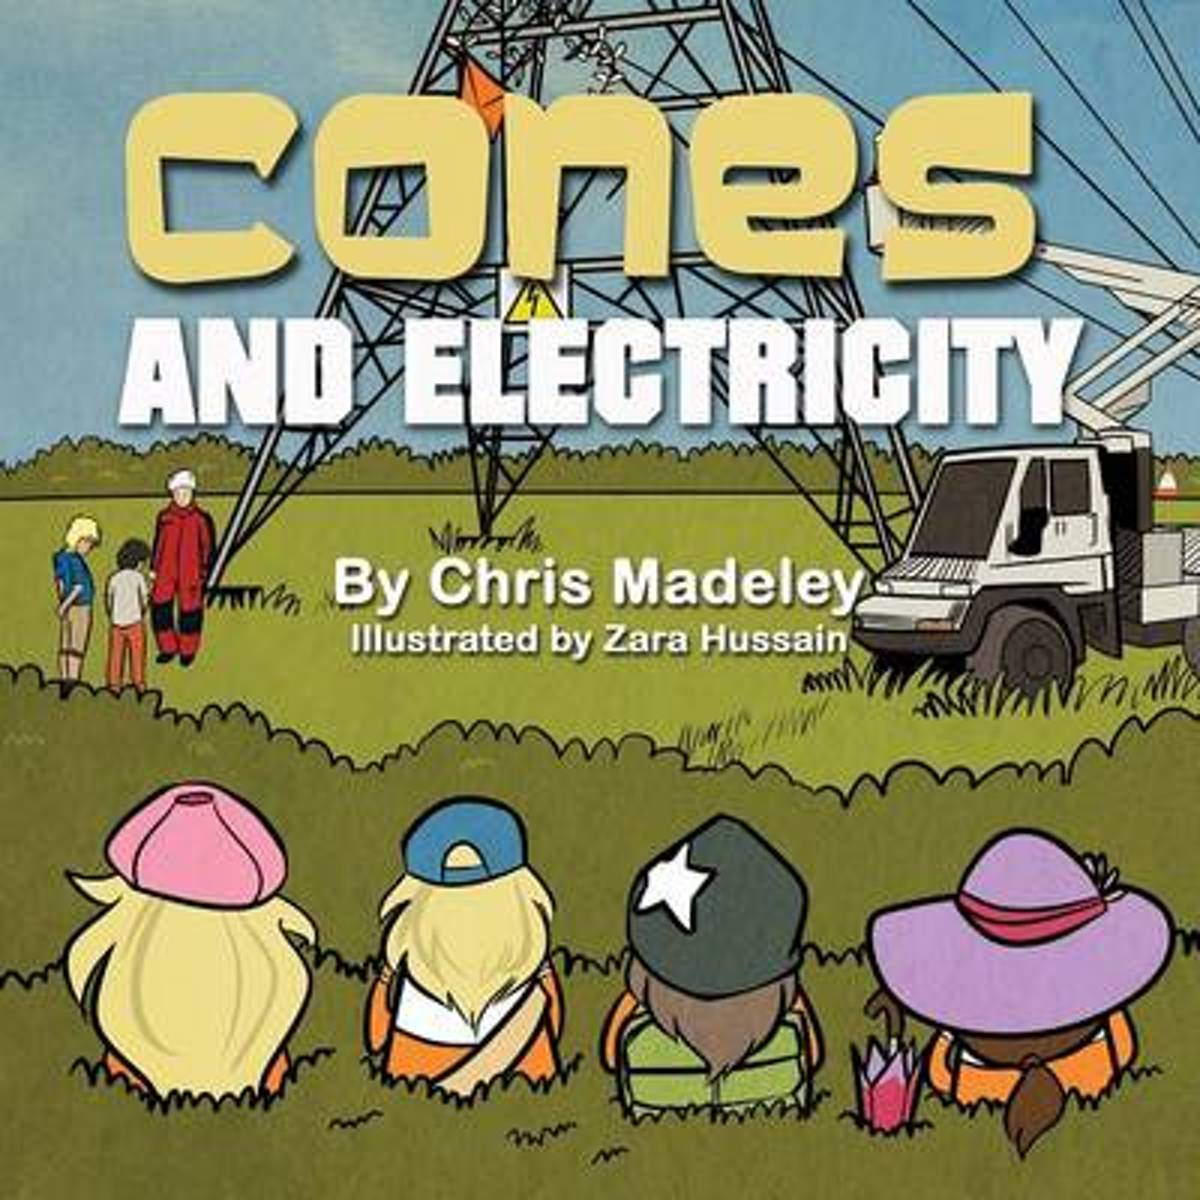 Cones and Electricity